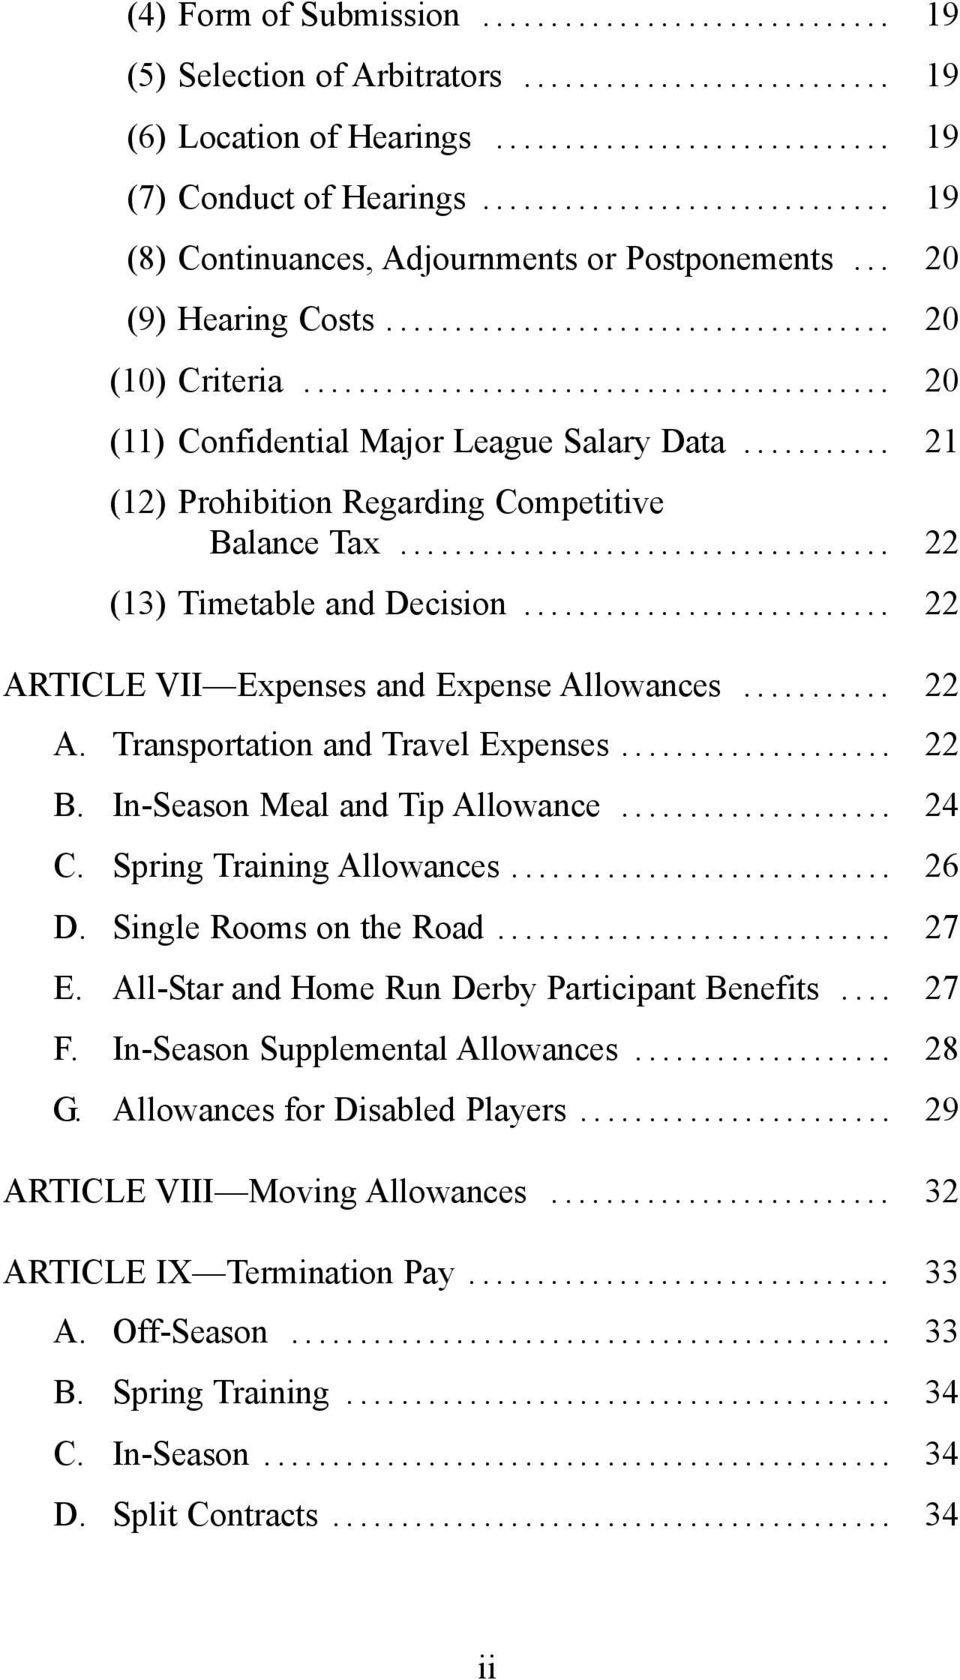 .. 22 ARTICLE VII Expenses and Expense Allowances... 22 A. Transportation and Travel Expenses... 22 B. In-Season Meal and Tip Allowance... 24 C. Spring Training Allowances... 26 D.